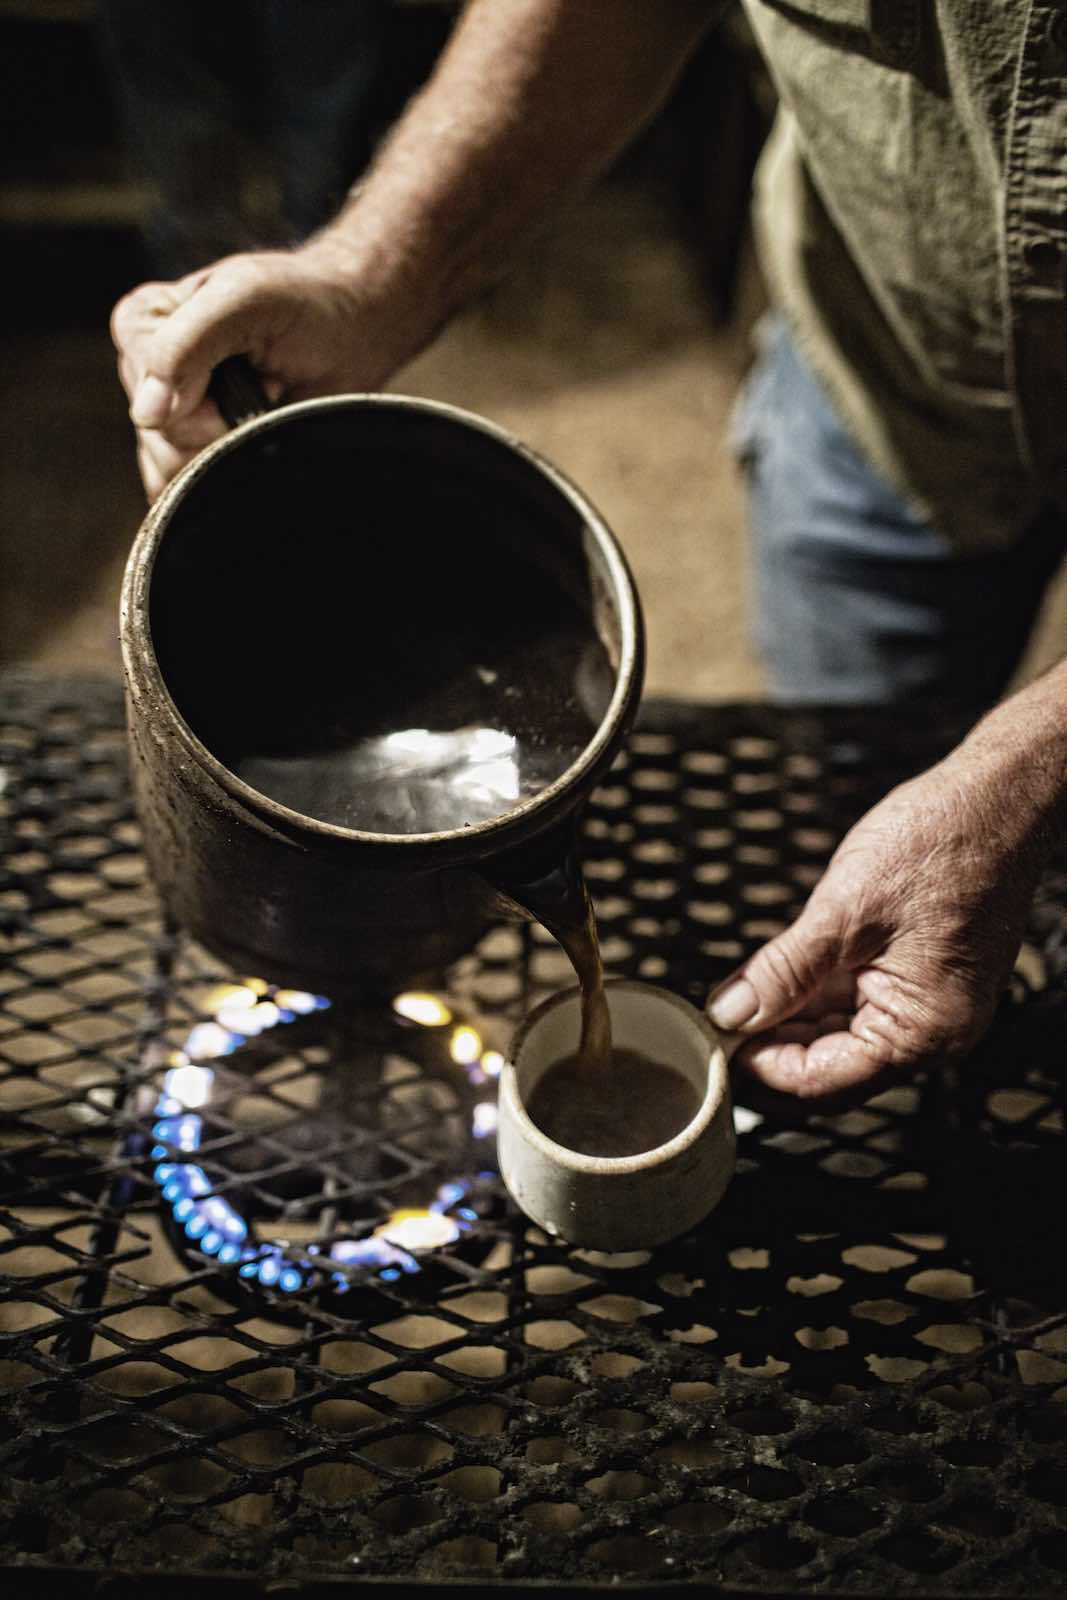 Coffee heating on a stove in a pitcher and pouring into a small mug.